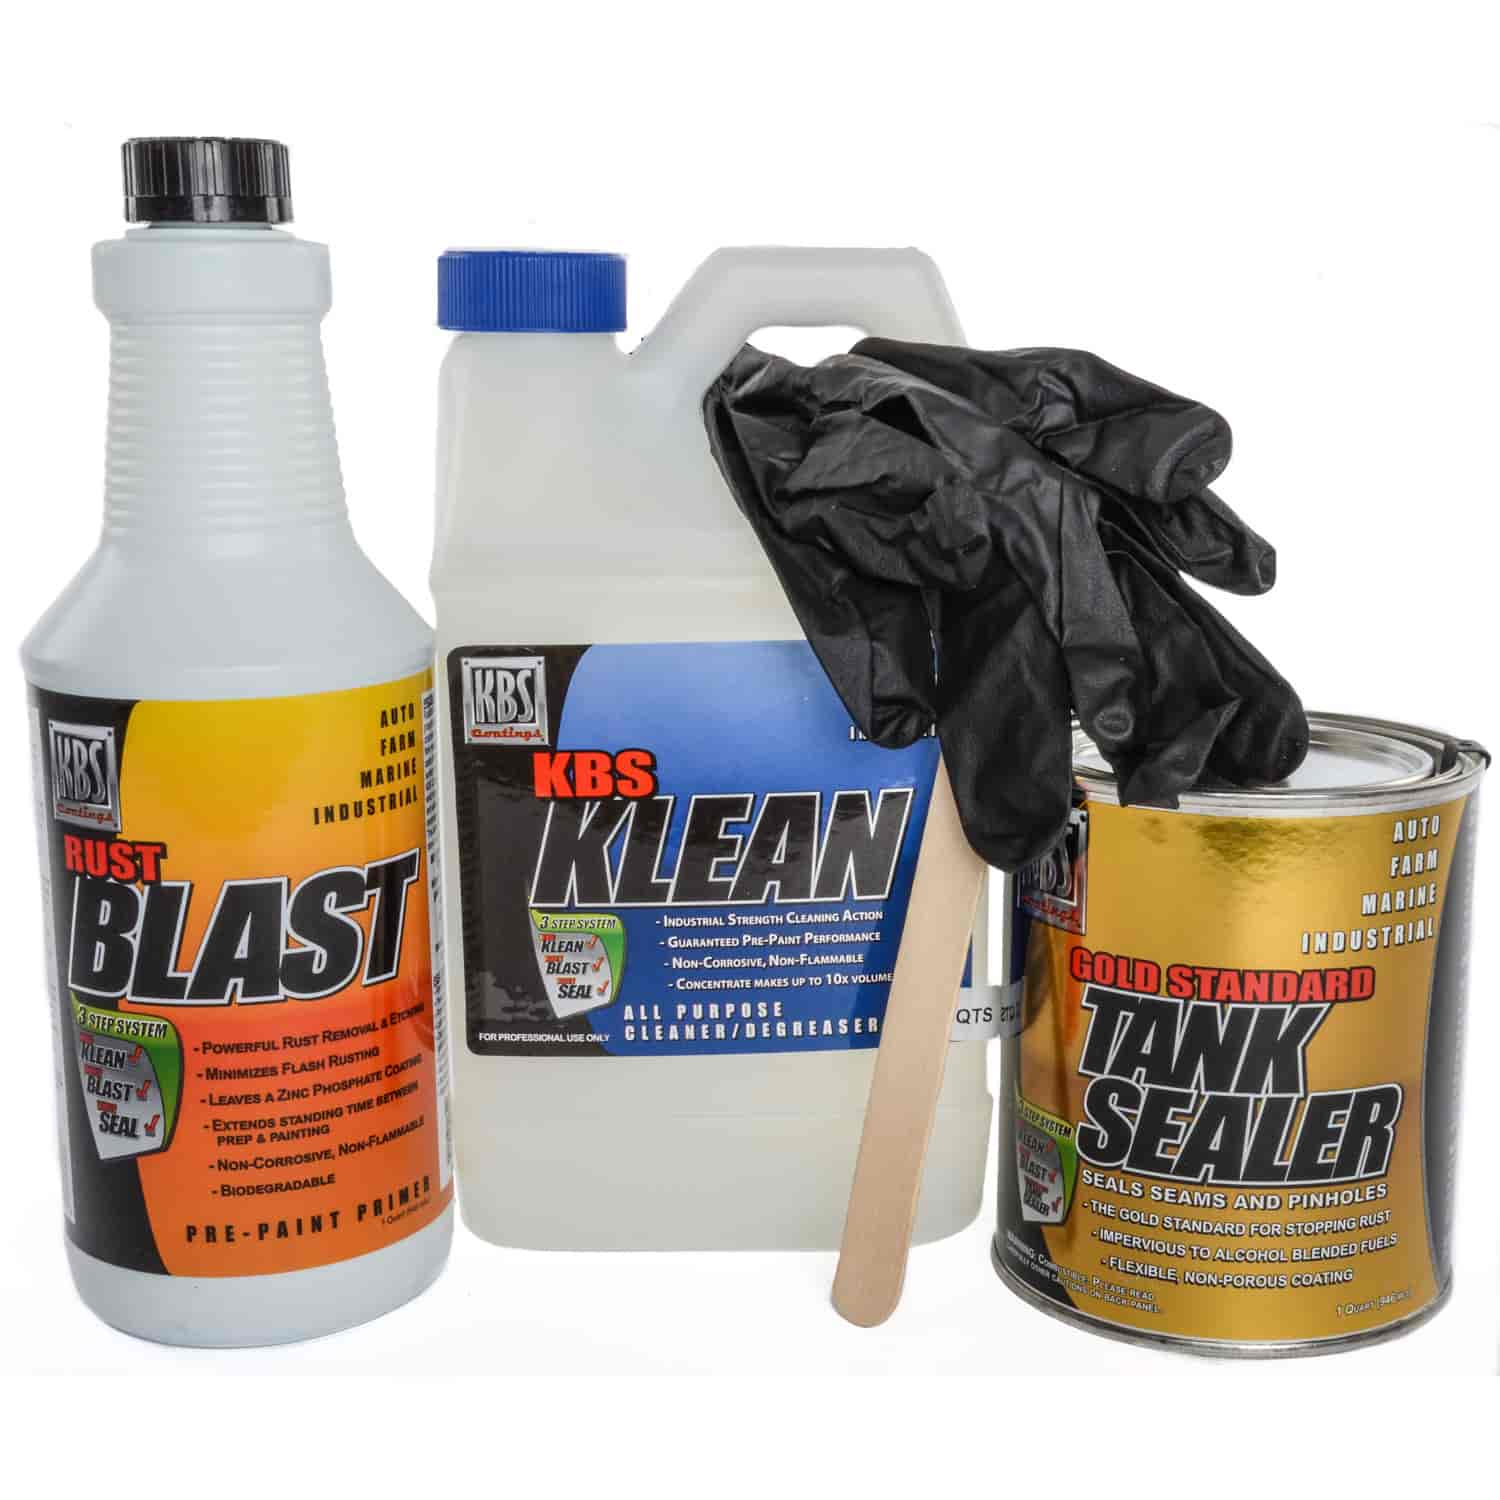 KBS Coatings 53000 - KBS Coatings Fuel Tank Sealer Kits